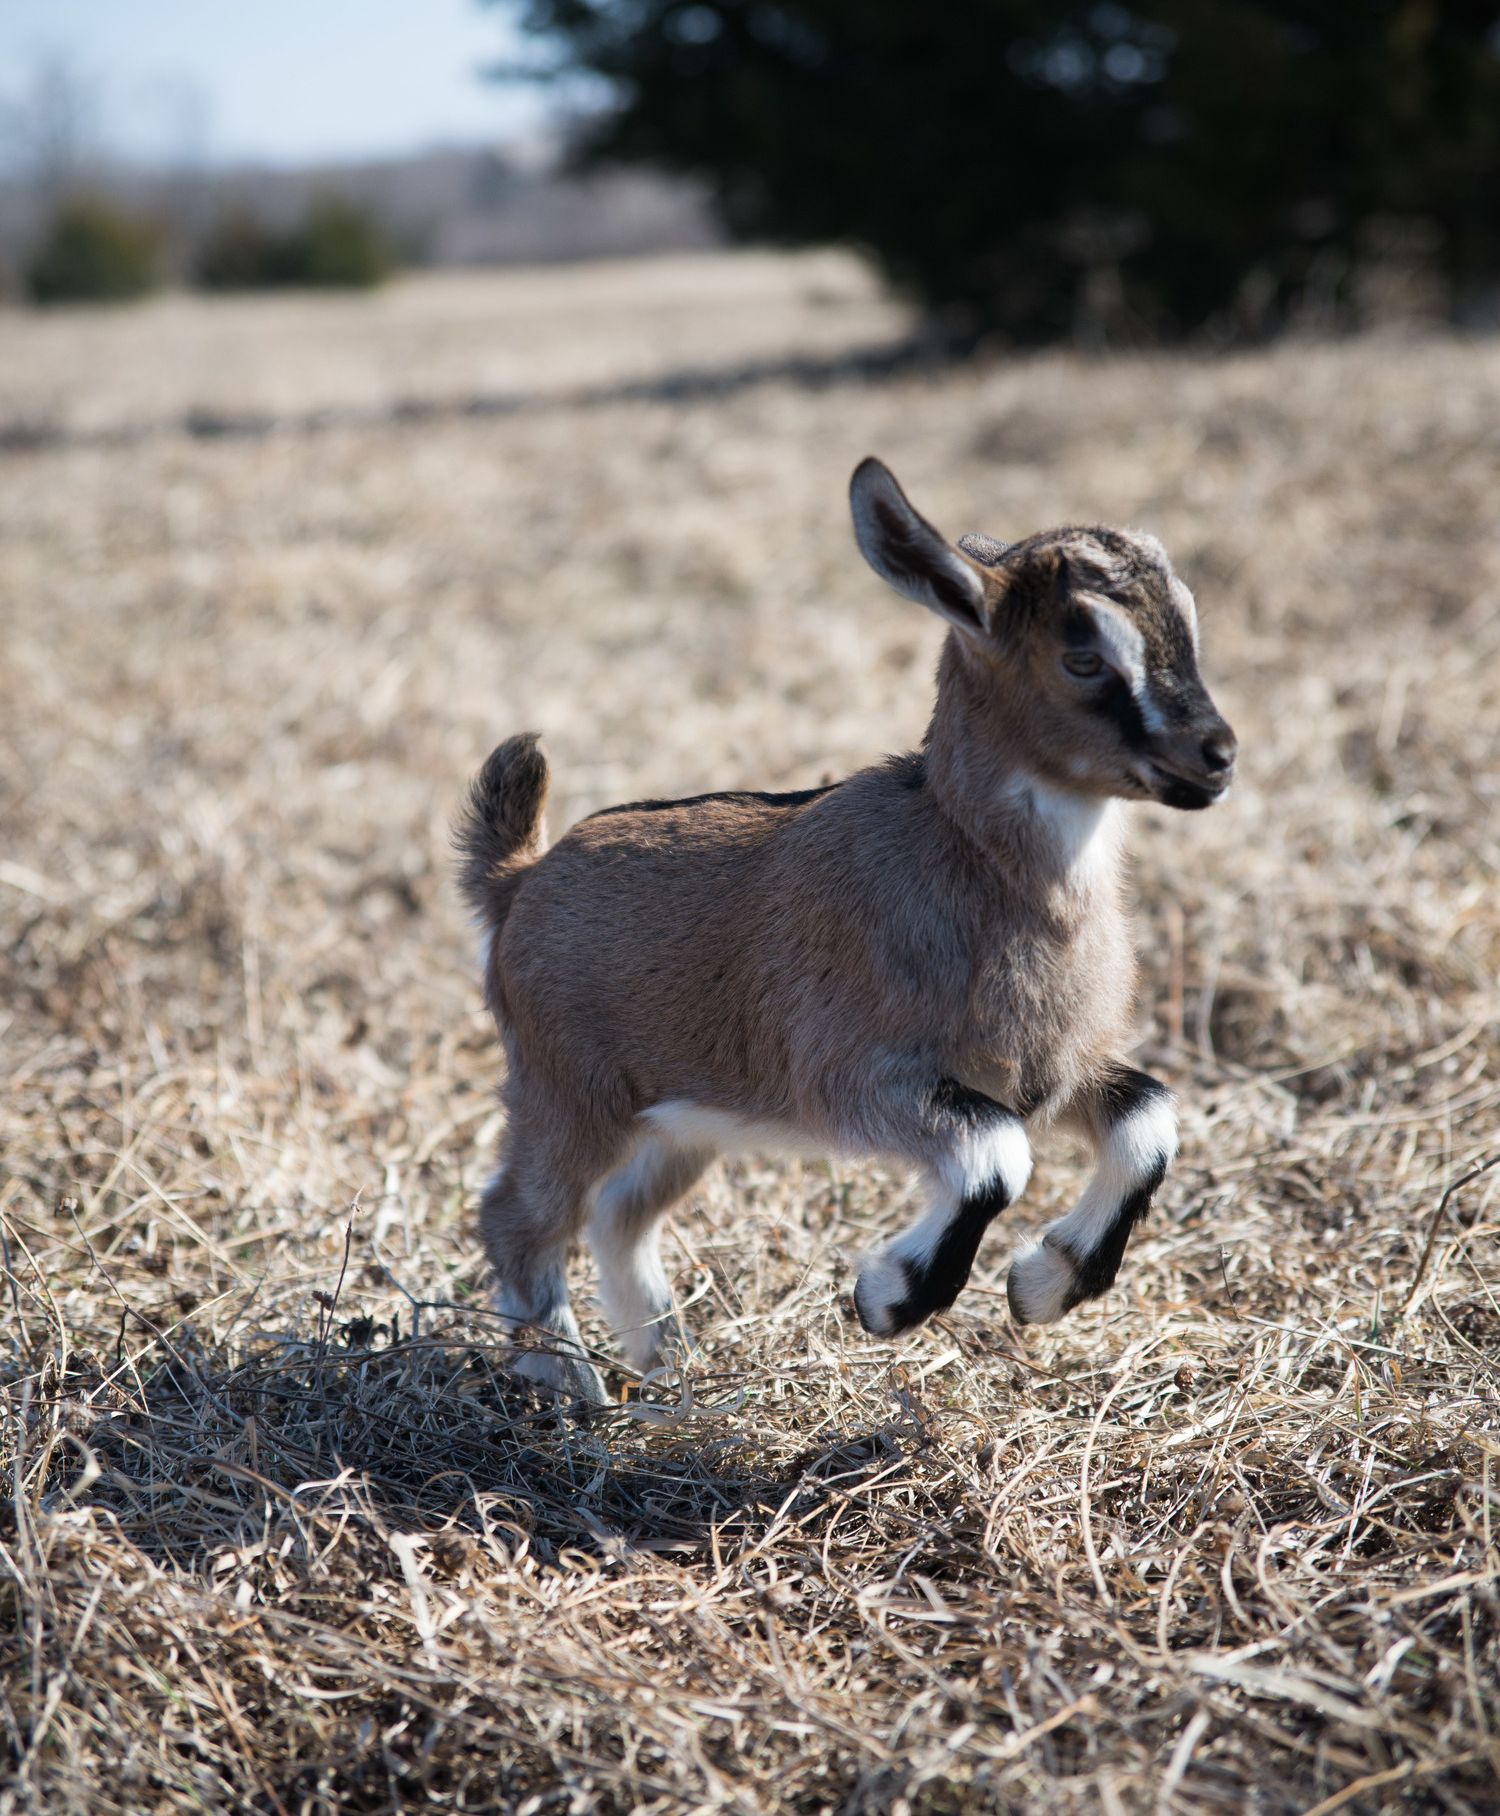 Bambi the Baby Goat